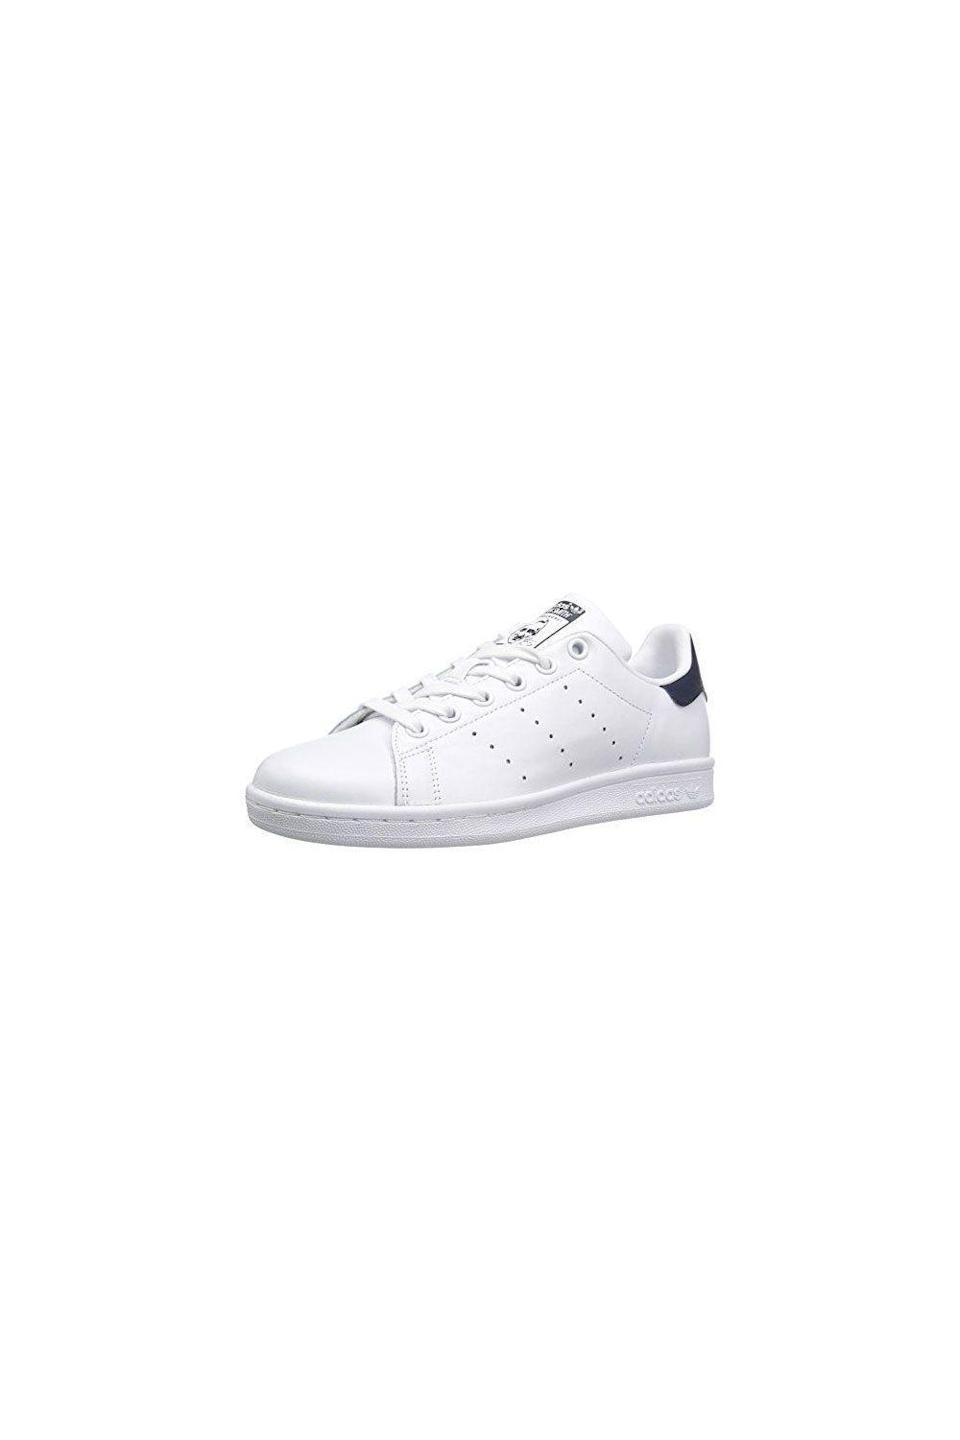 "<p><strong>adidas Originals</strong></p><p>amazon.com</p><p><strong>$53.84</strong></p><p><a href=""https://www.amazon.com/dp/B01N2HR12N?tag=syn-yahoo-20&ascsubtag=%5Bartid%7C10072.g.28799071%5Bsrc%7Cyahoo-us"" rel=""nofollow noopener"" target=""_blank"" data-ylk=""slk:SHOP Now"" class=""link rapid-noclick-resp"">SHOP Now</a></p>"